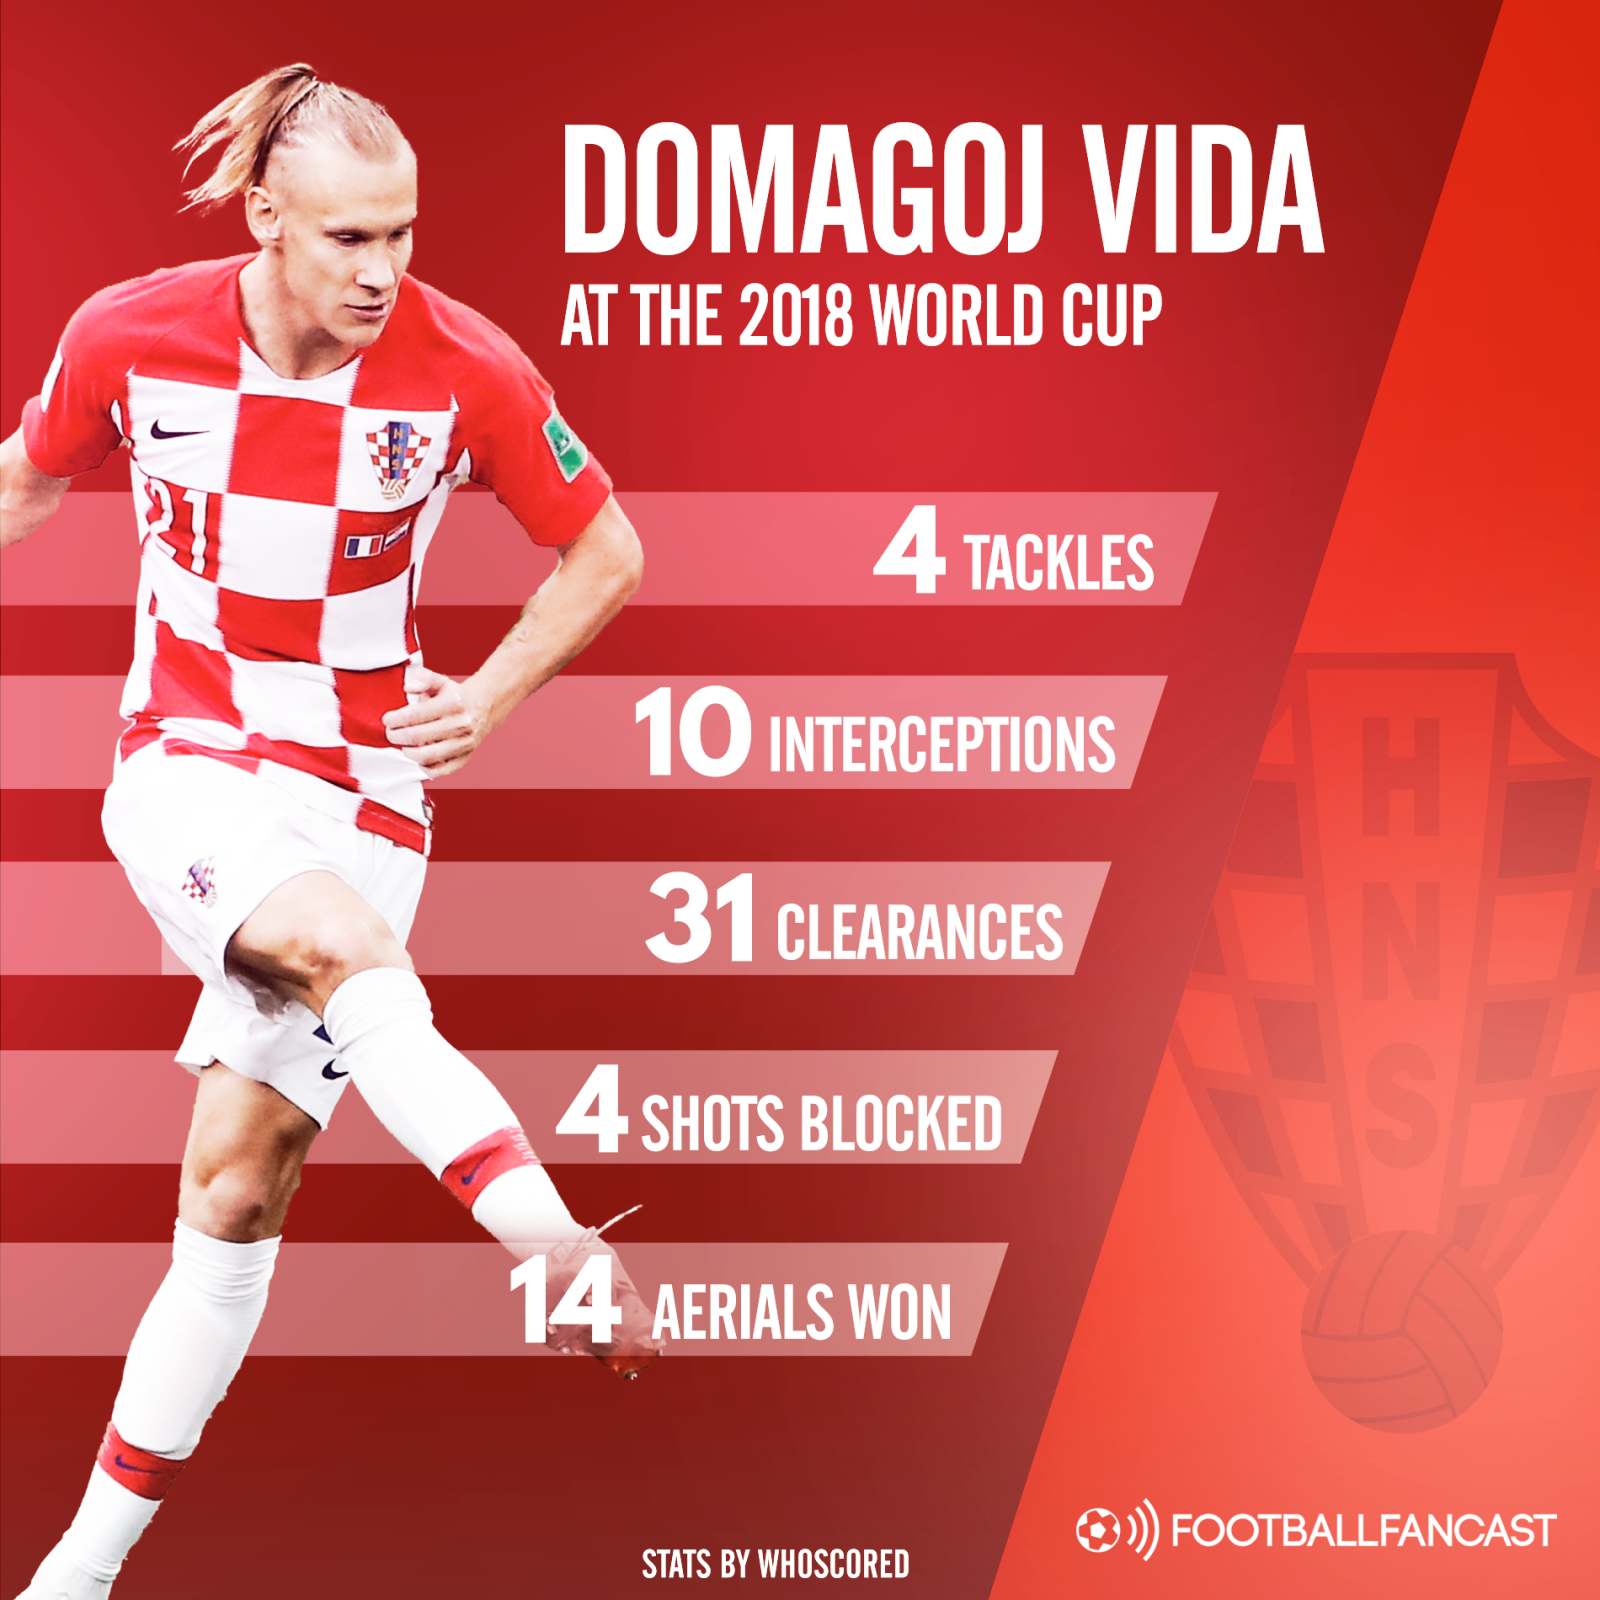 Domagoj Vida stats for Croatia in 2018 World Cup